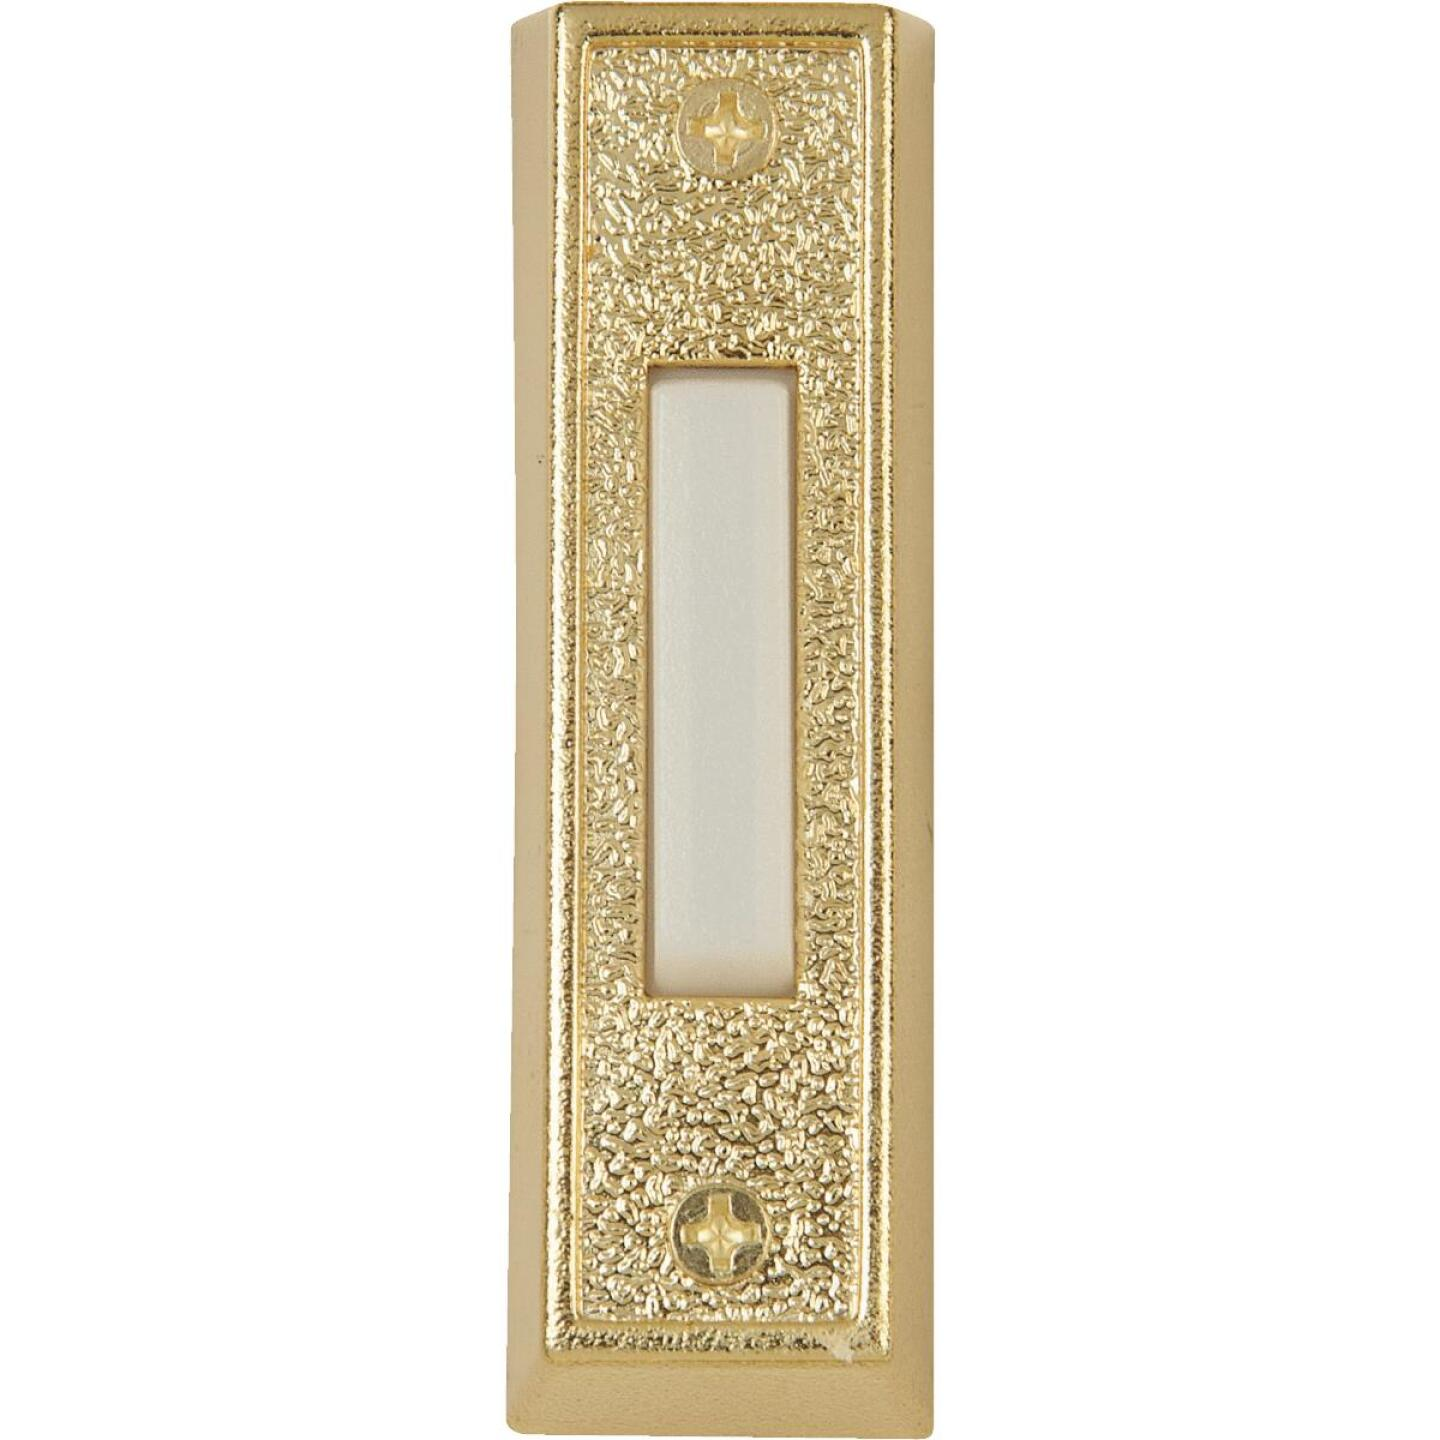 IQ America Wired Gold Plastic Lighted Doorbell Push-Button Image 1